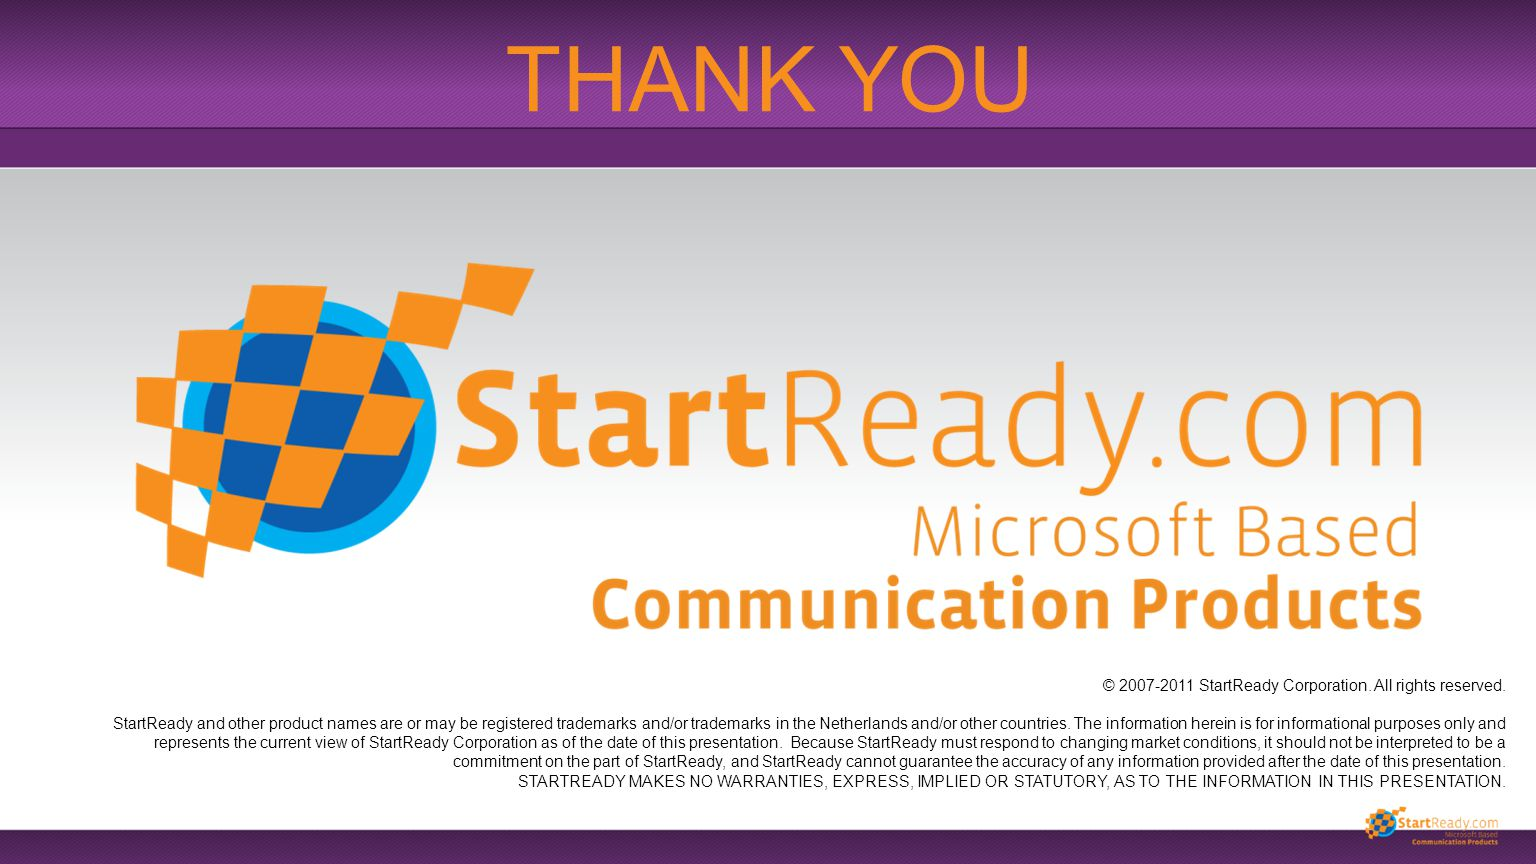 © 2007-2011 StartReady Corporation. All rights reserved. StartReady and other product names are or may be registered trademarks and/or trademarks in t